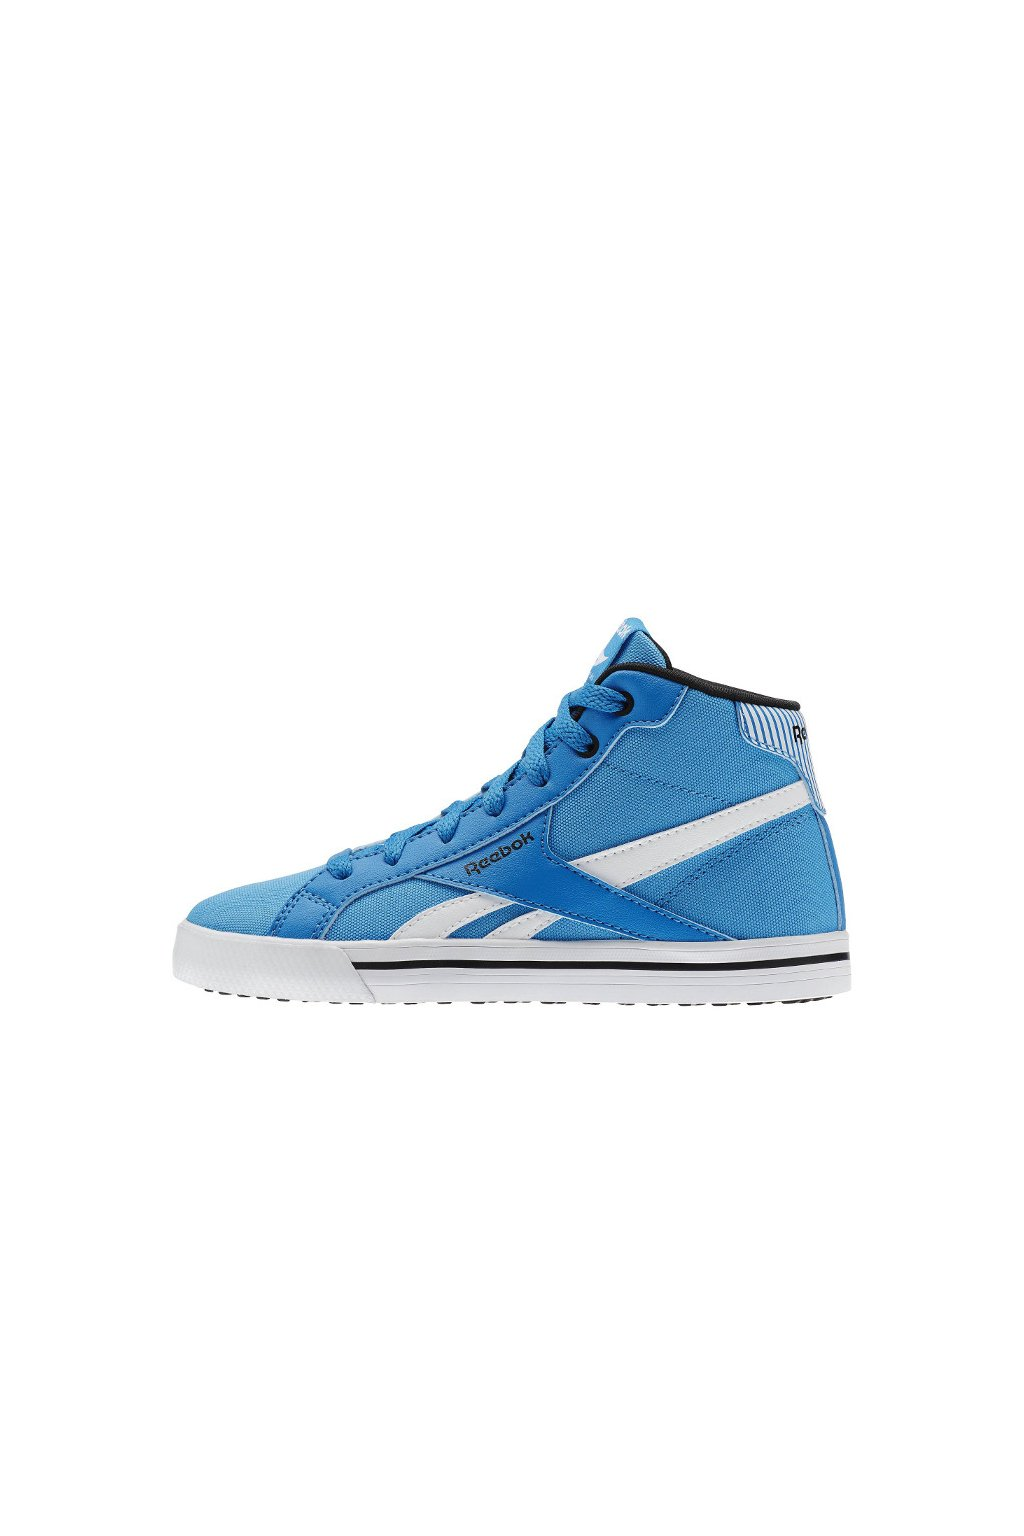 reebok ROYAL COMP MID CVS V69965